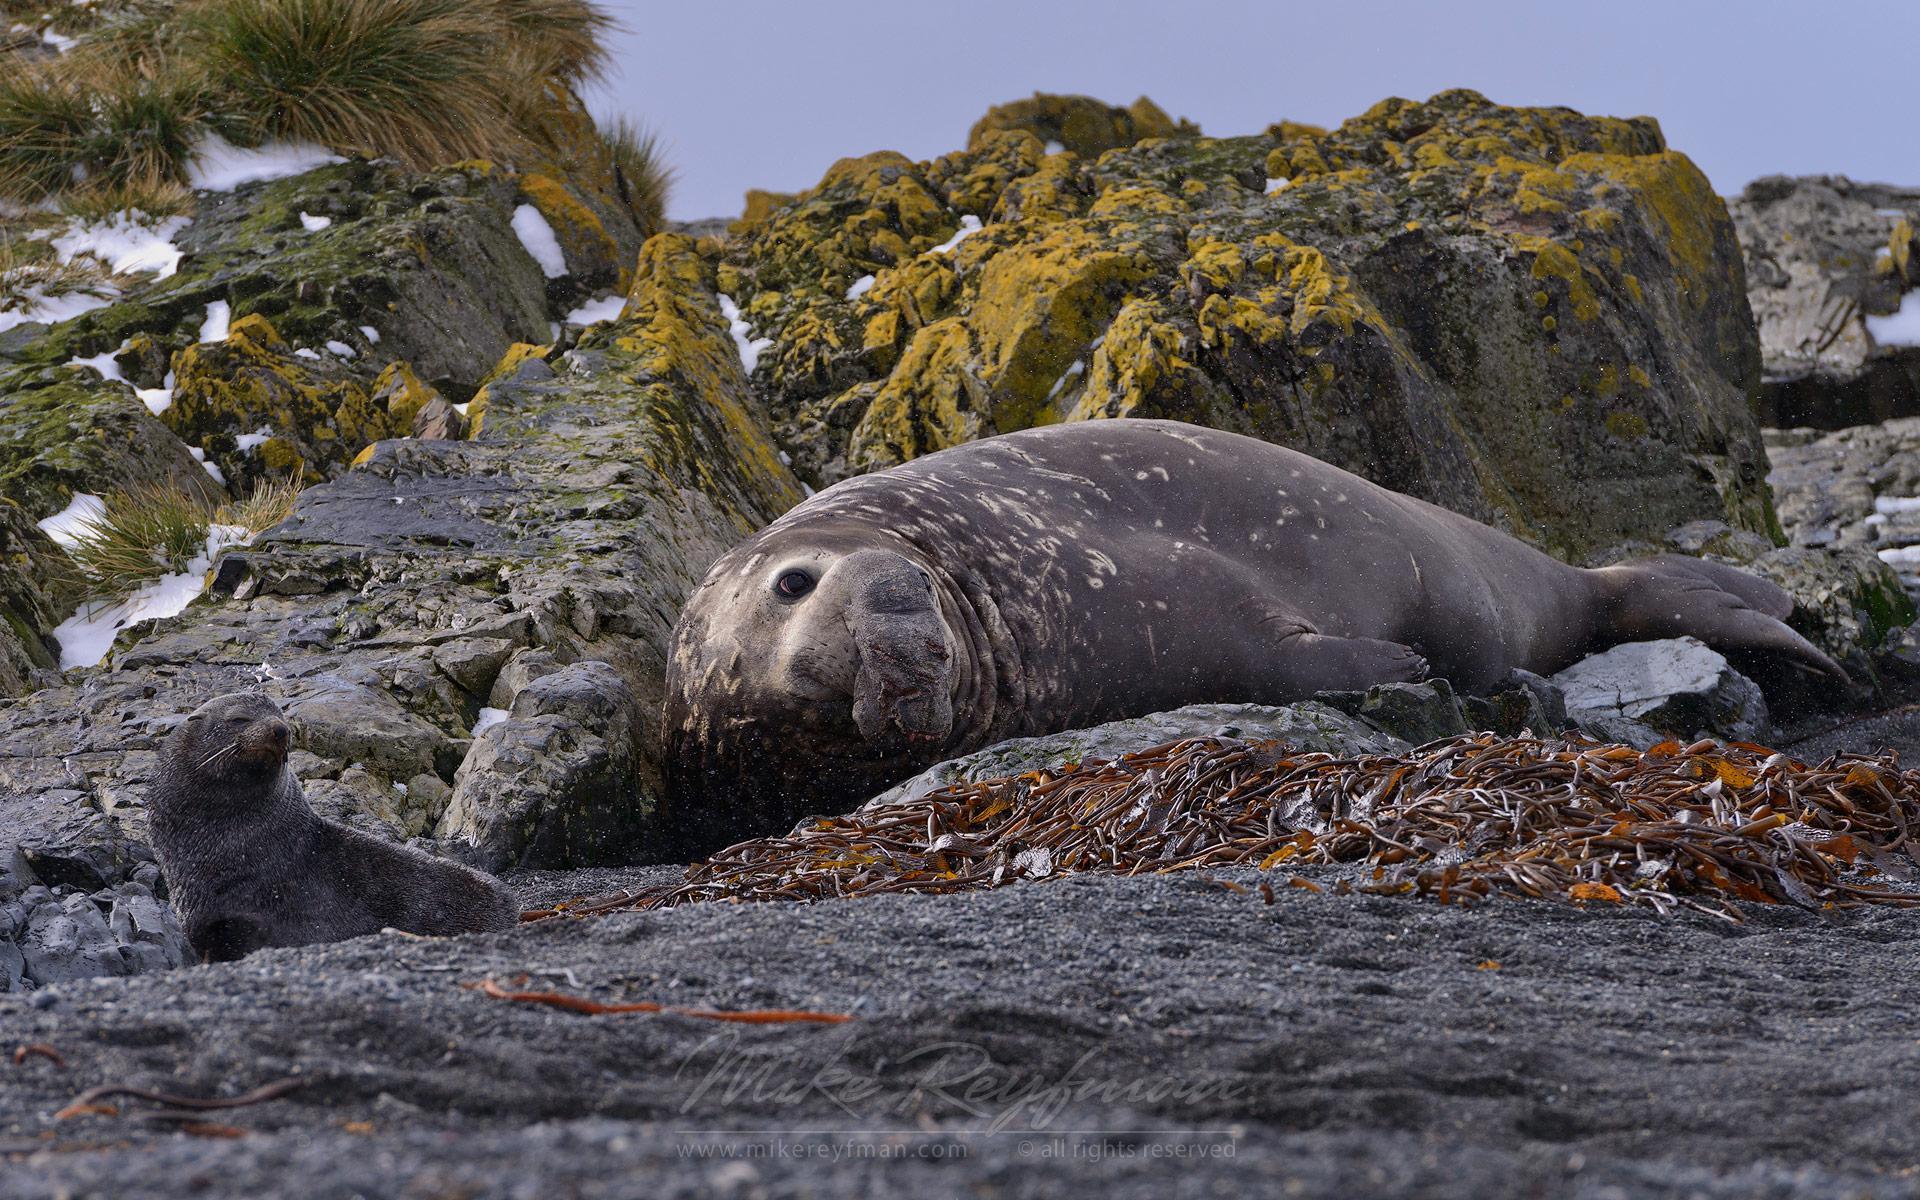 Southern Elephant Seal (Mirounga leonina) and Antarctic Fur Seal (Arctocephalus gazella). Prion Island, South Georgia, Sub-Antarctic - Southern-Elephant-Seals-Fur-Seals-South-Georgia-Sub-Antarctic - Mike Reyfman Photography